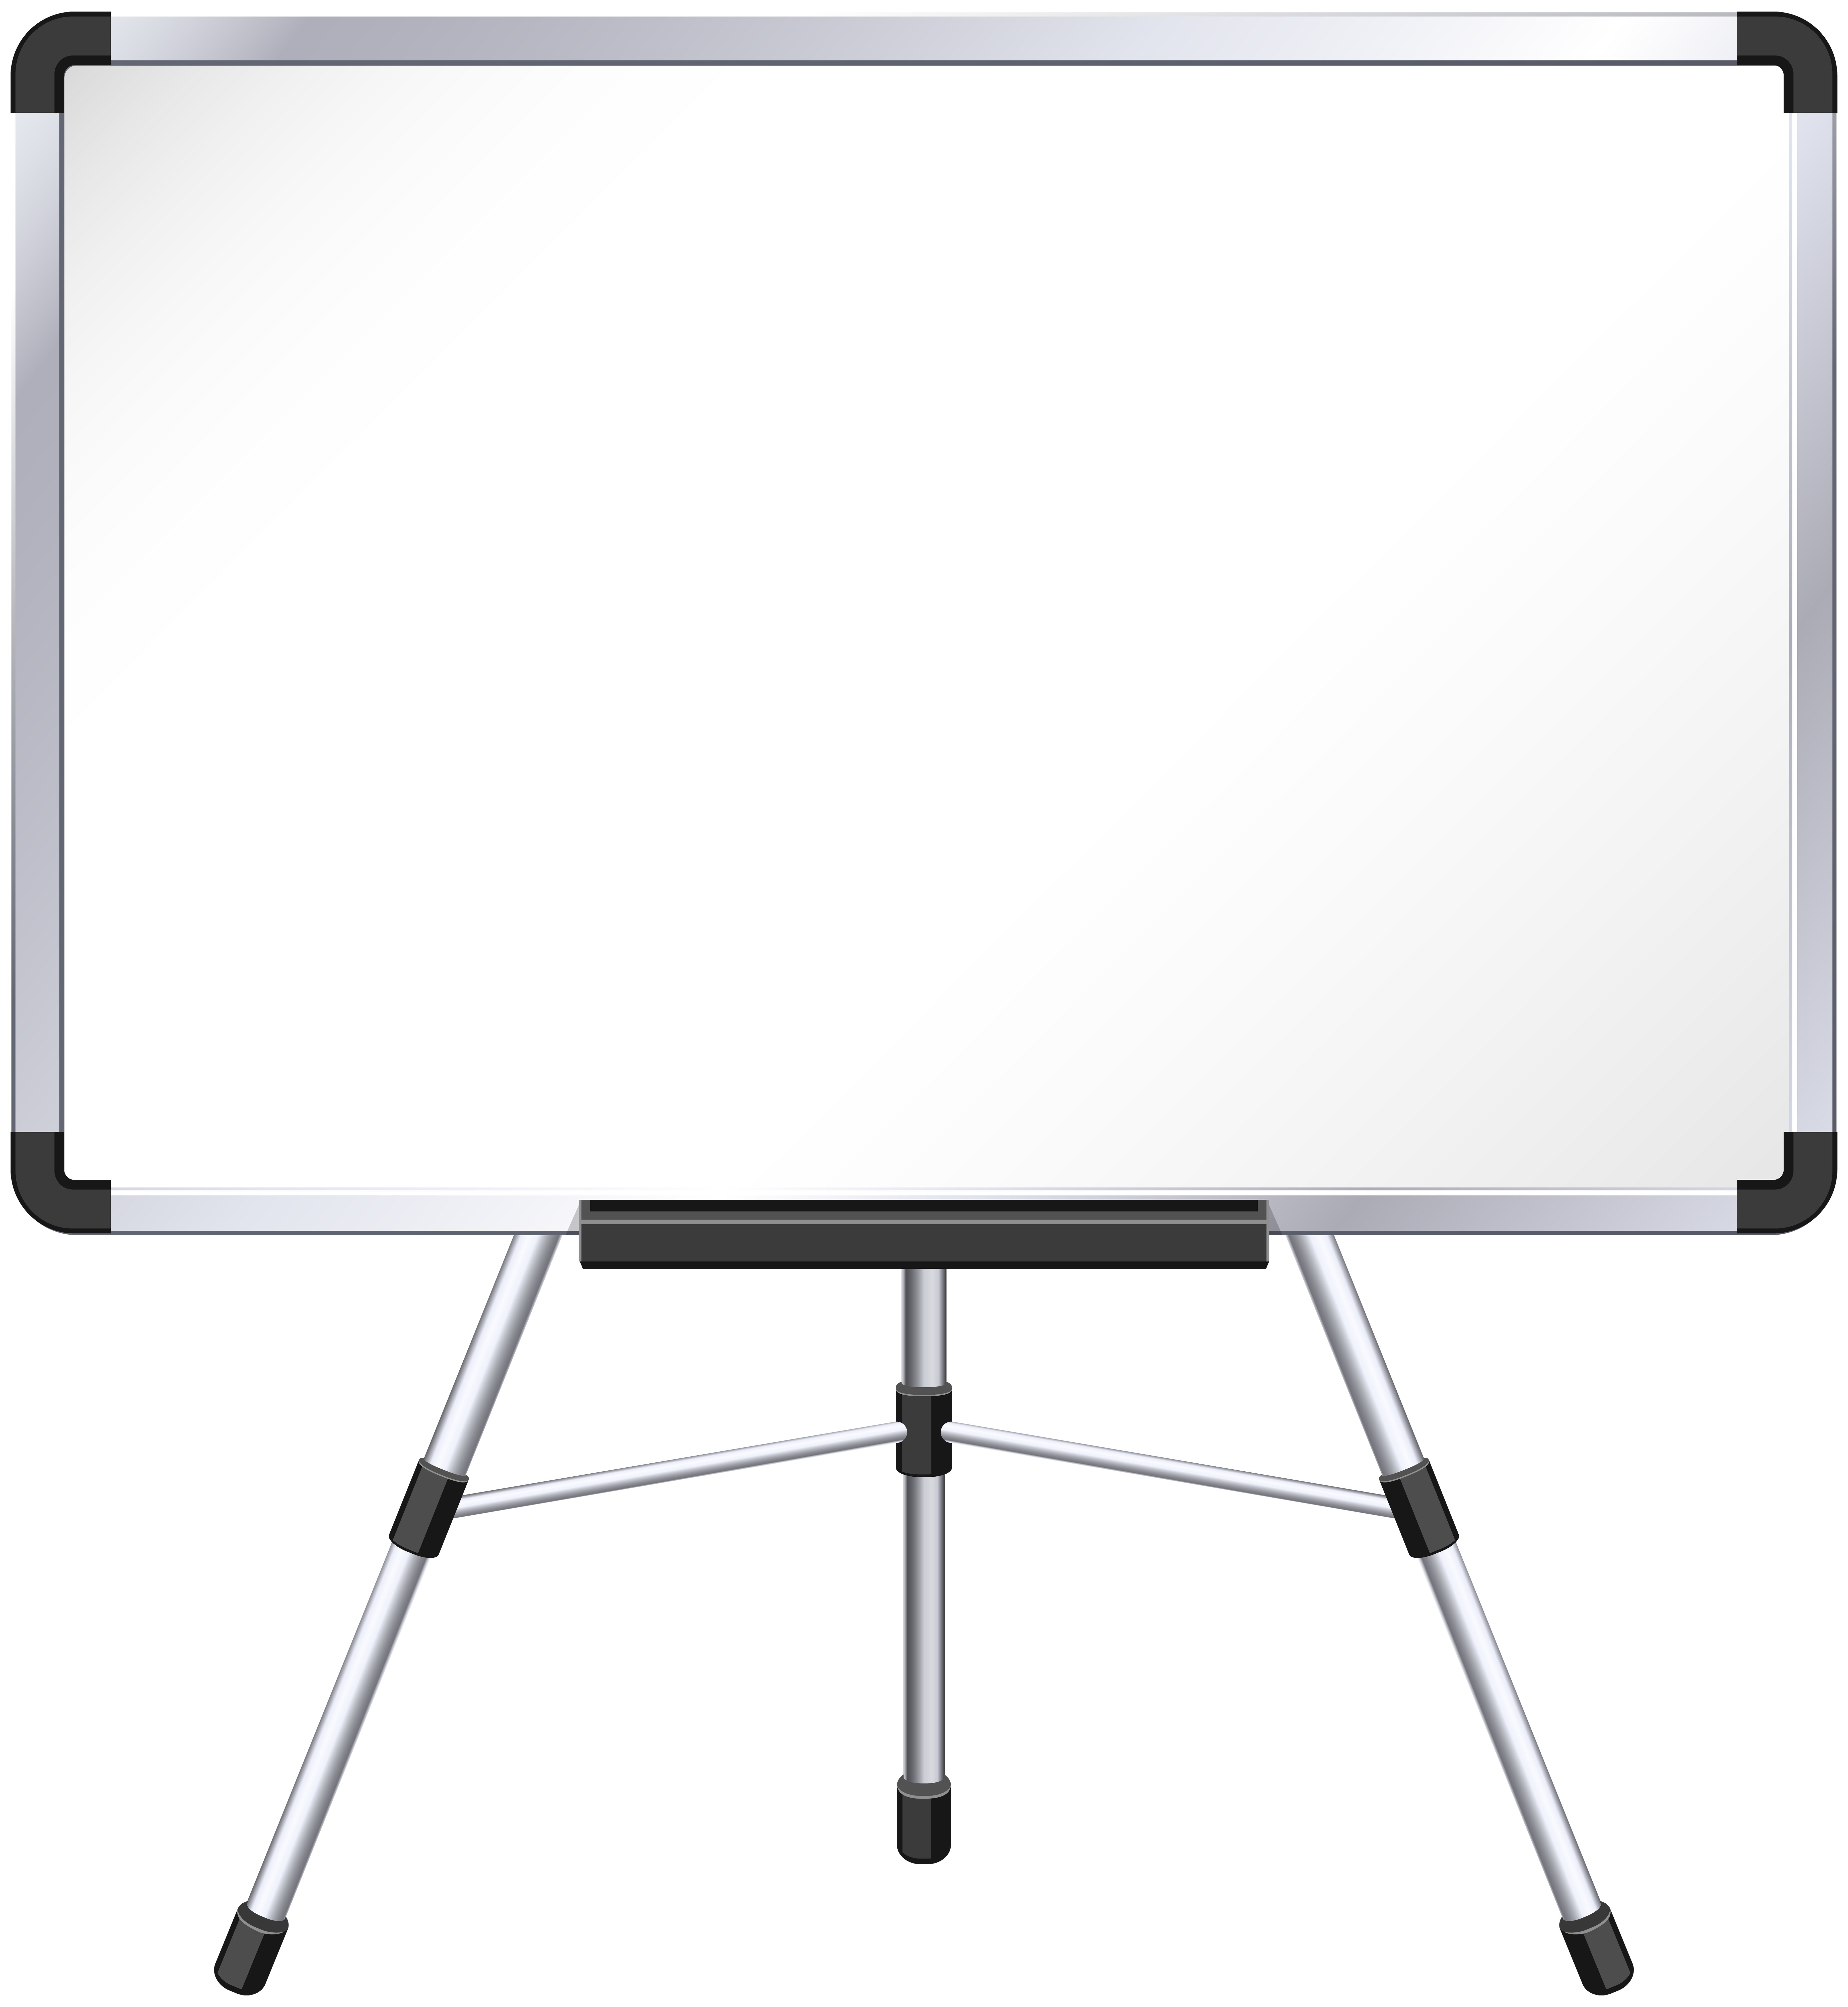 Whiteboard clipart png graphic royalty free stock Whiteboard PNG Clip Art Image | Gallery Yopriceville - High ... graphic royalty free stock